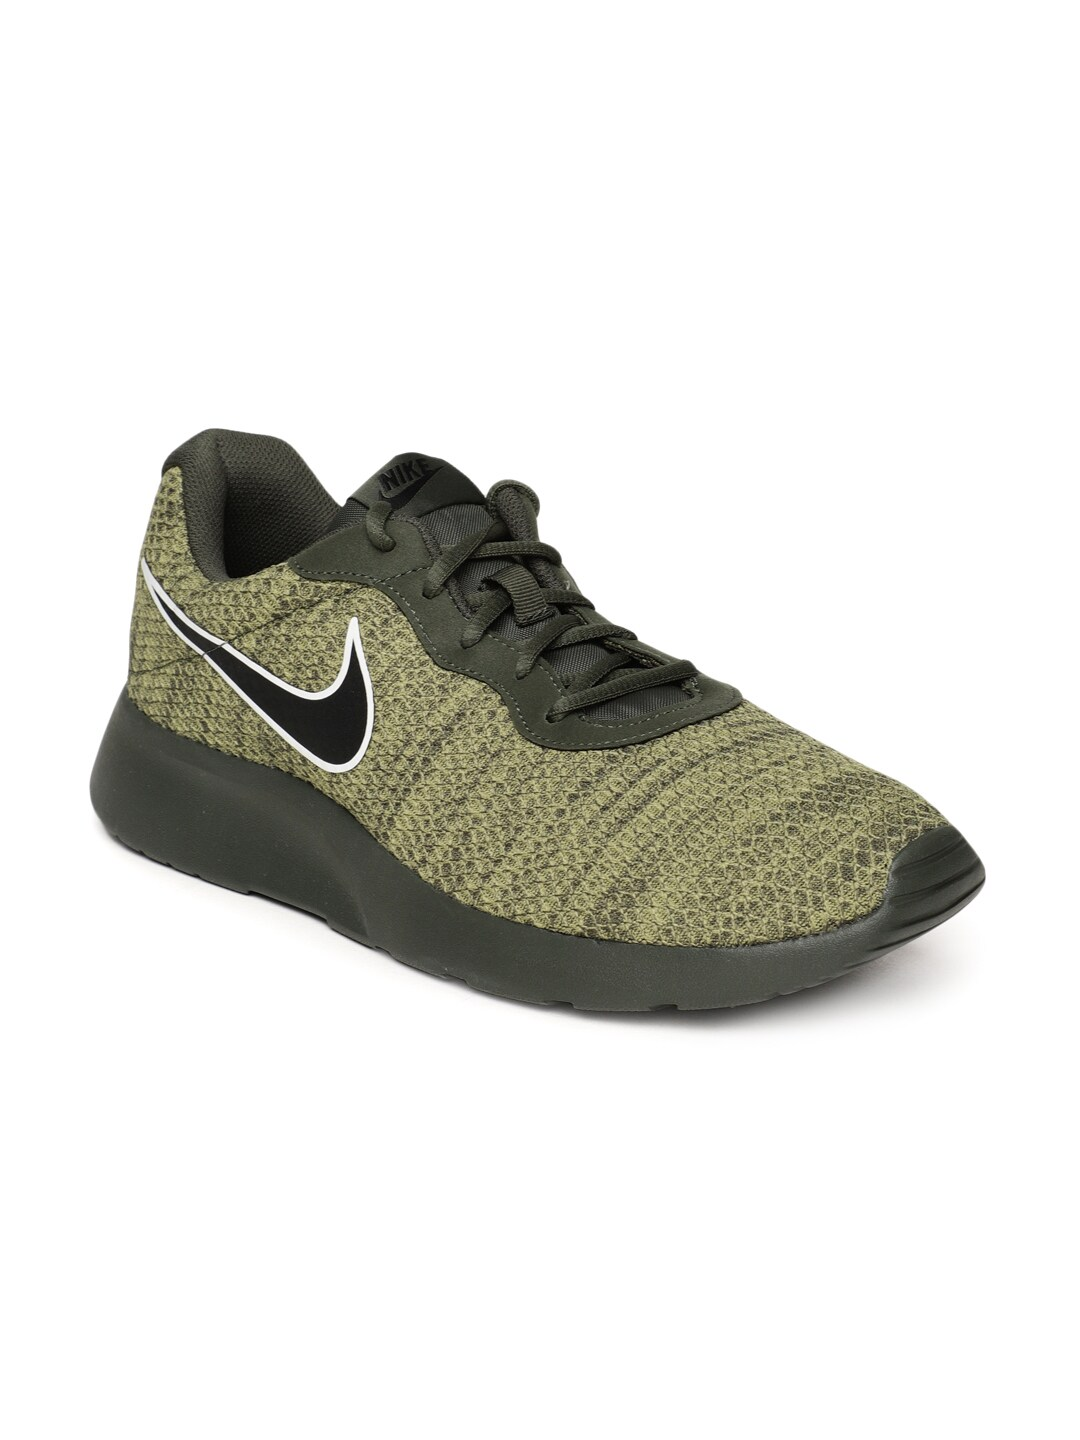 save off 7042f ea7f6 Shoes - Buy Shoes for Men, Women   Kids online in India - Myntra